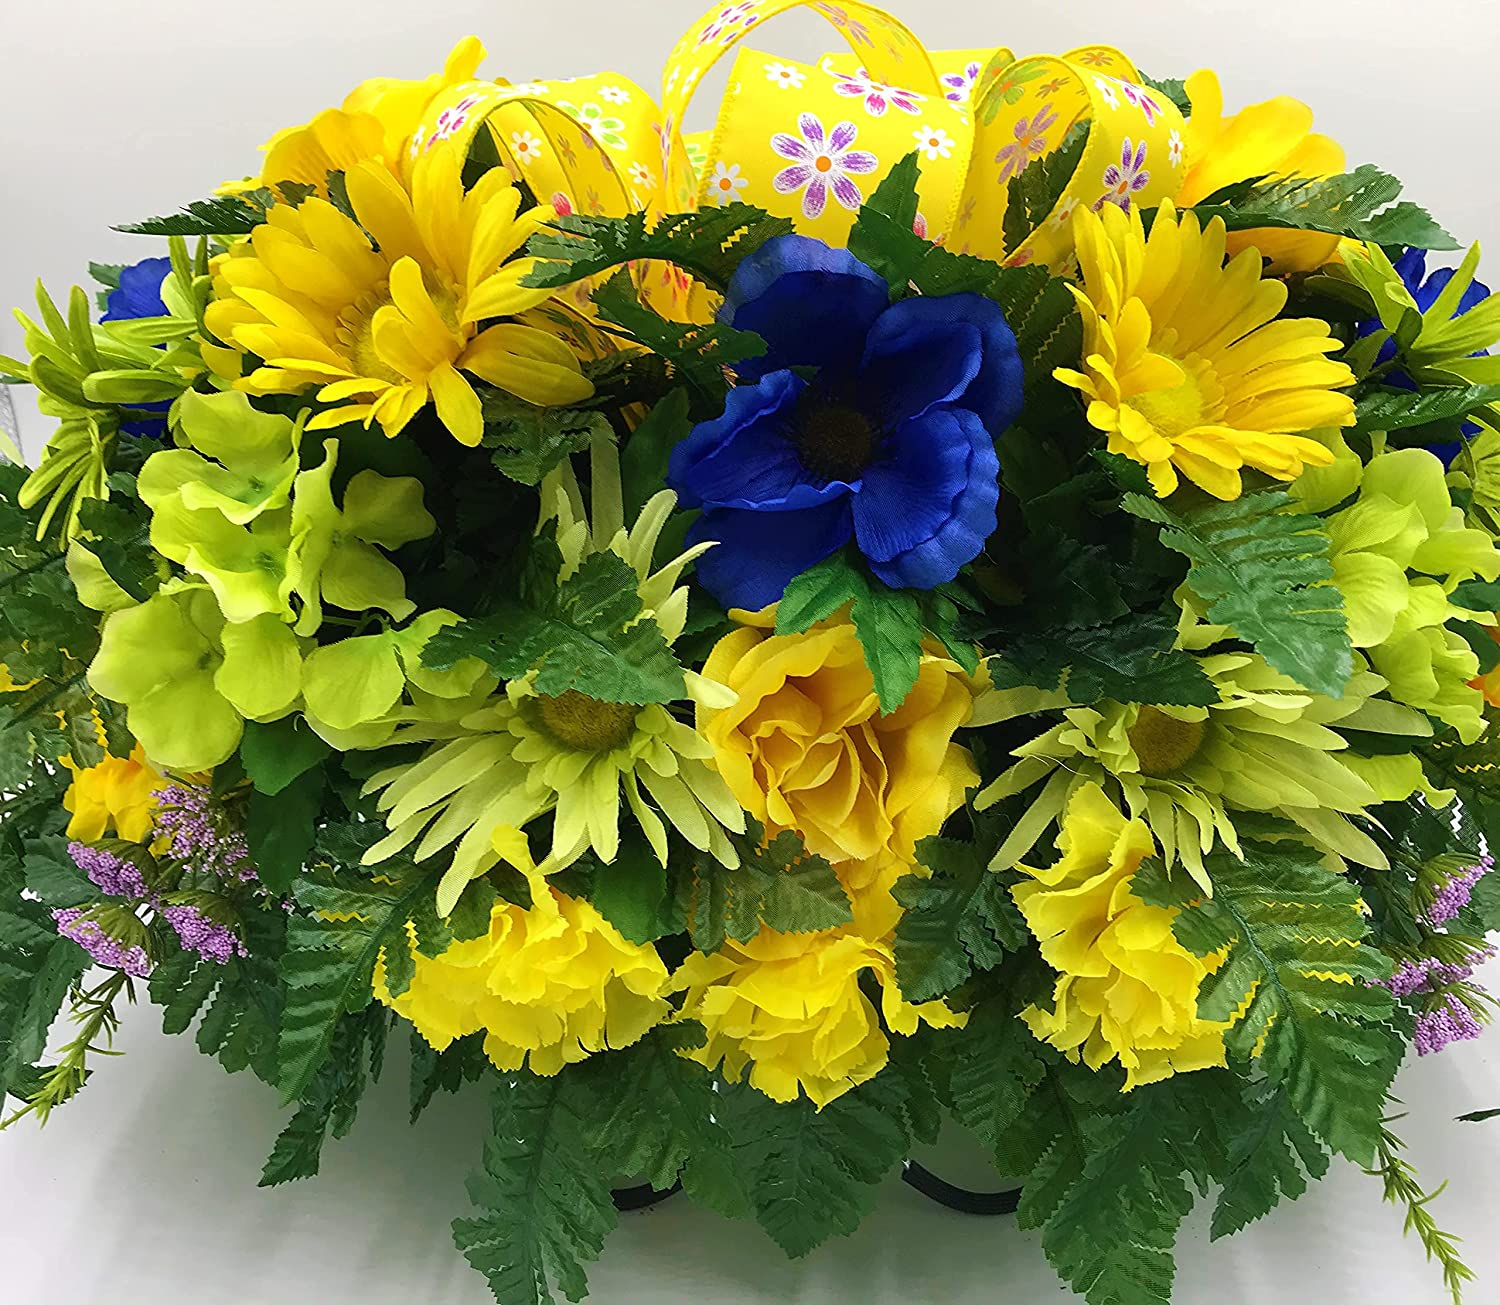 Yellow Memorial Cemetery Saddle cheap Arran Spring Decorations Very popular Flowers